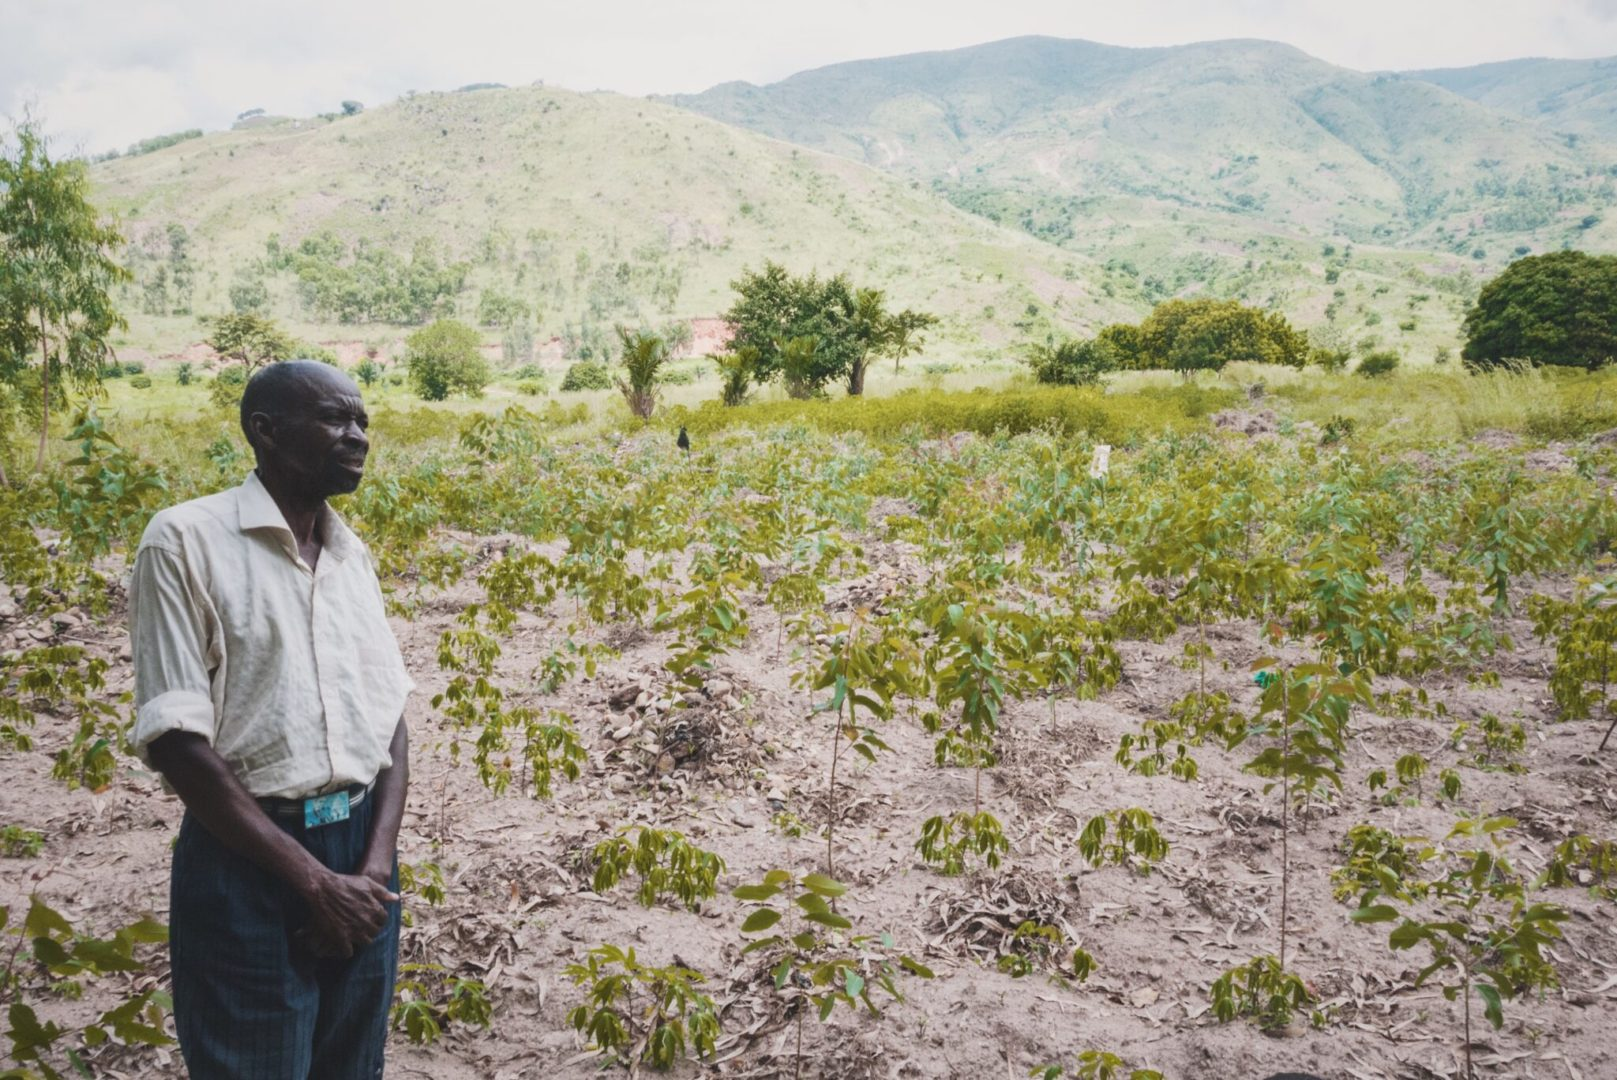 Hope enables farmers to envision plenty where once there was nothing.